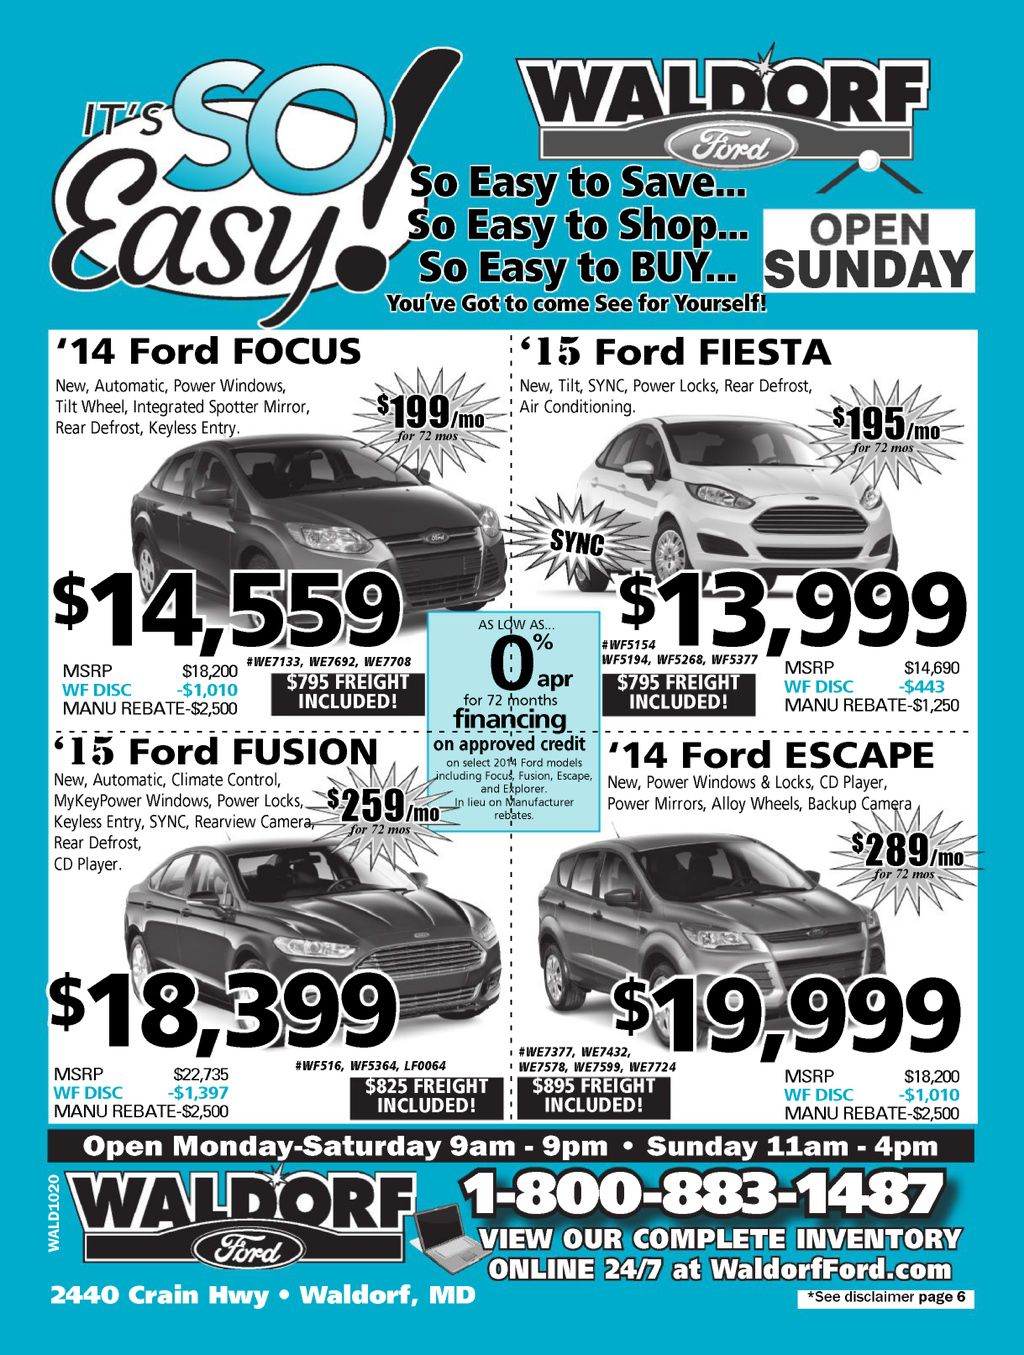 #Catalog #Ford #New #Car #Truck #SUV call 301-843-2400 or